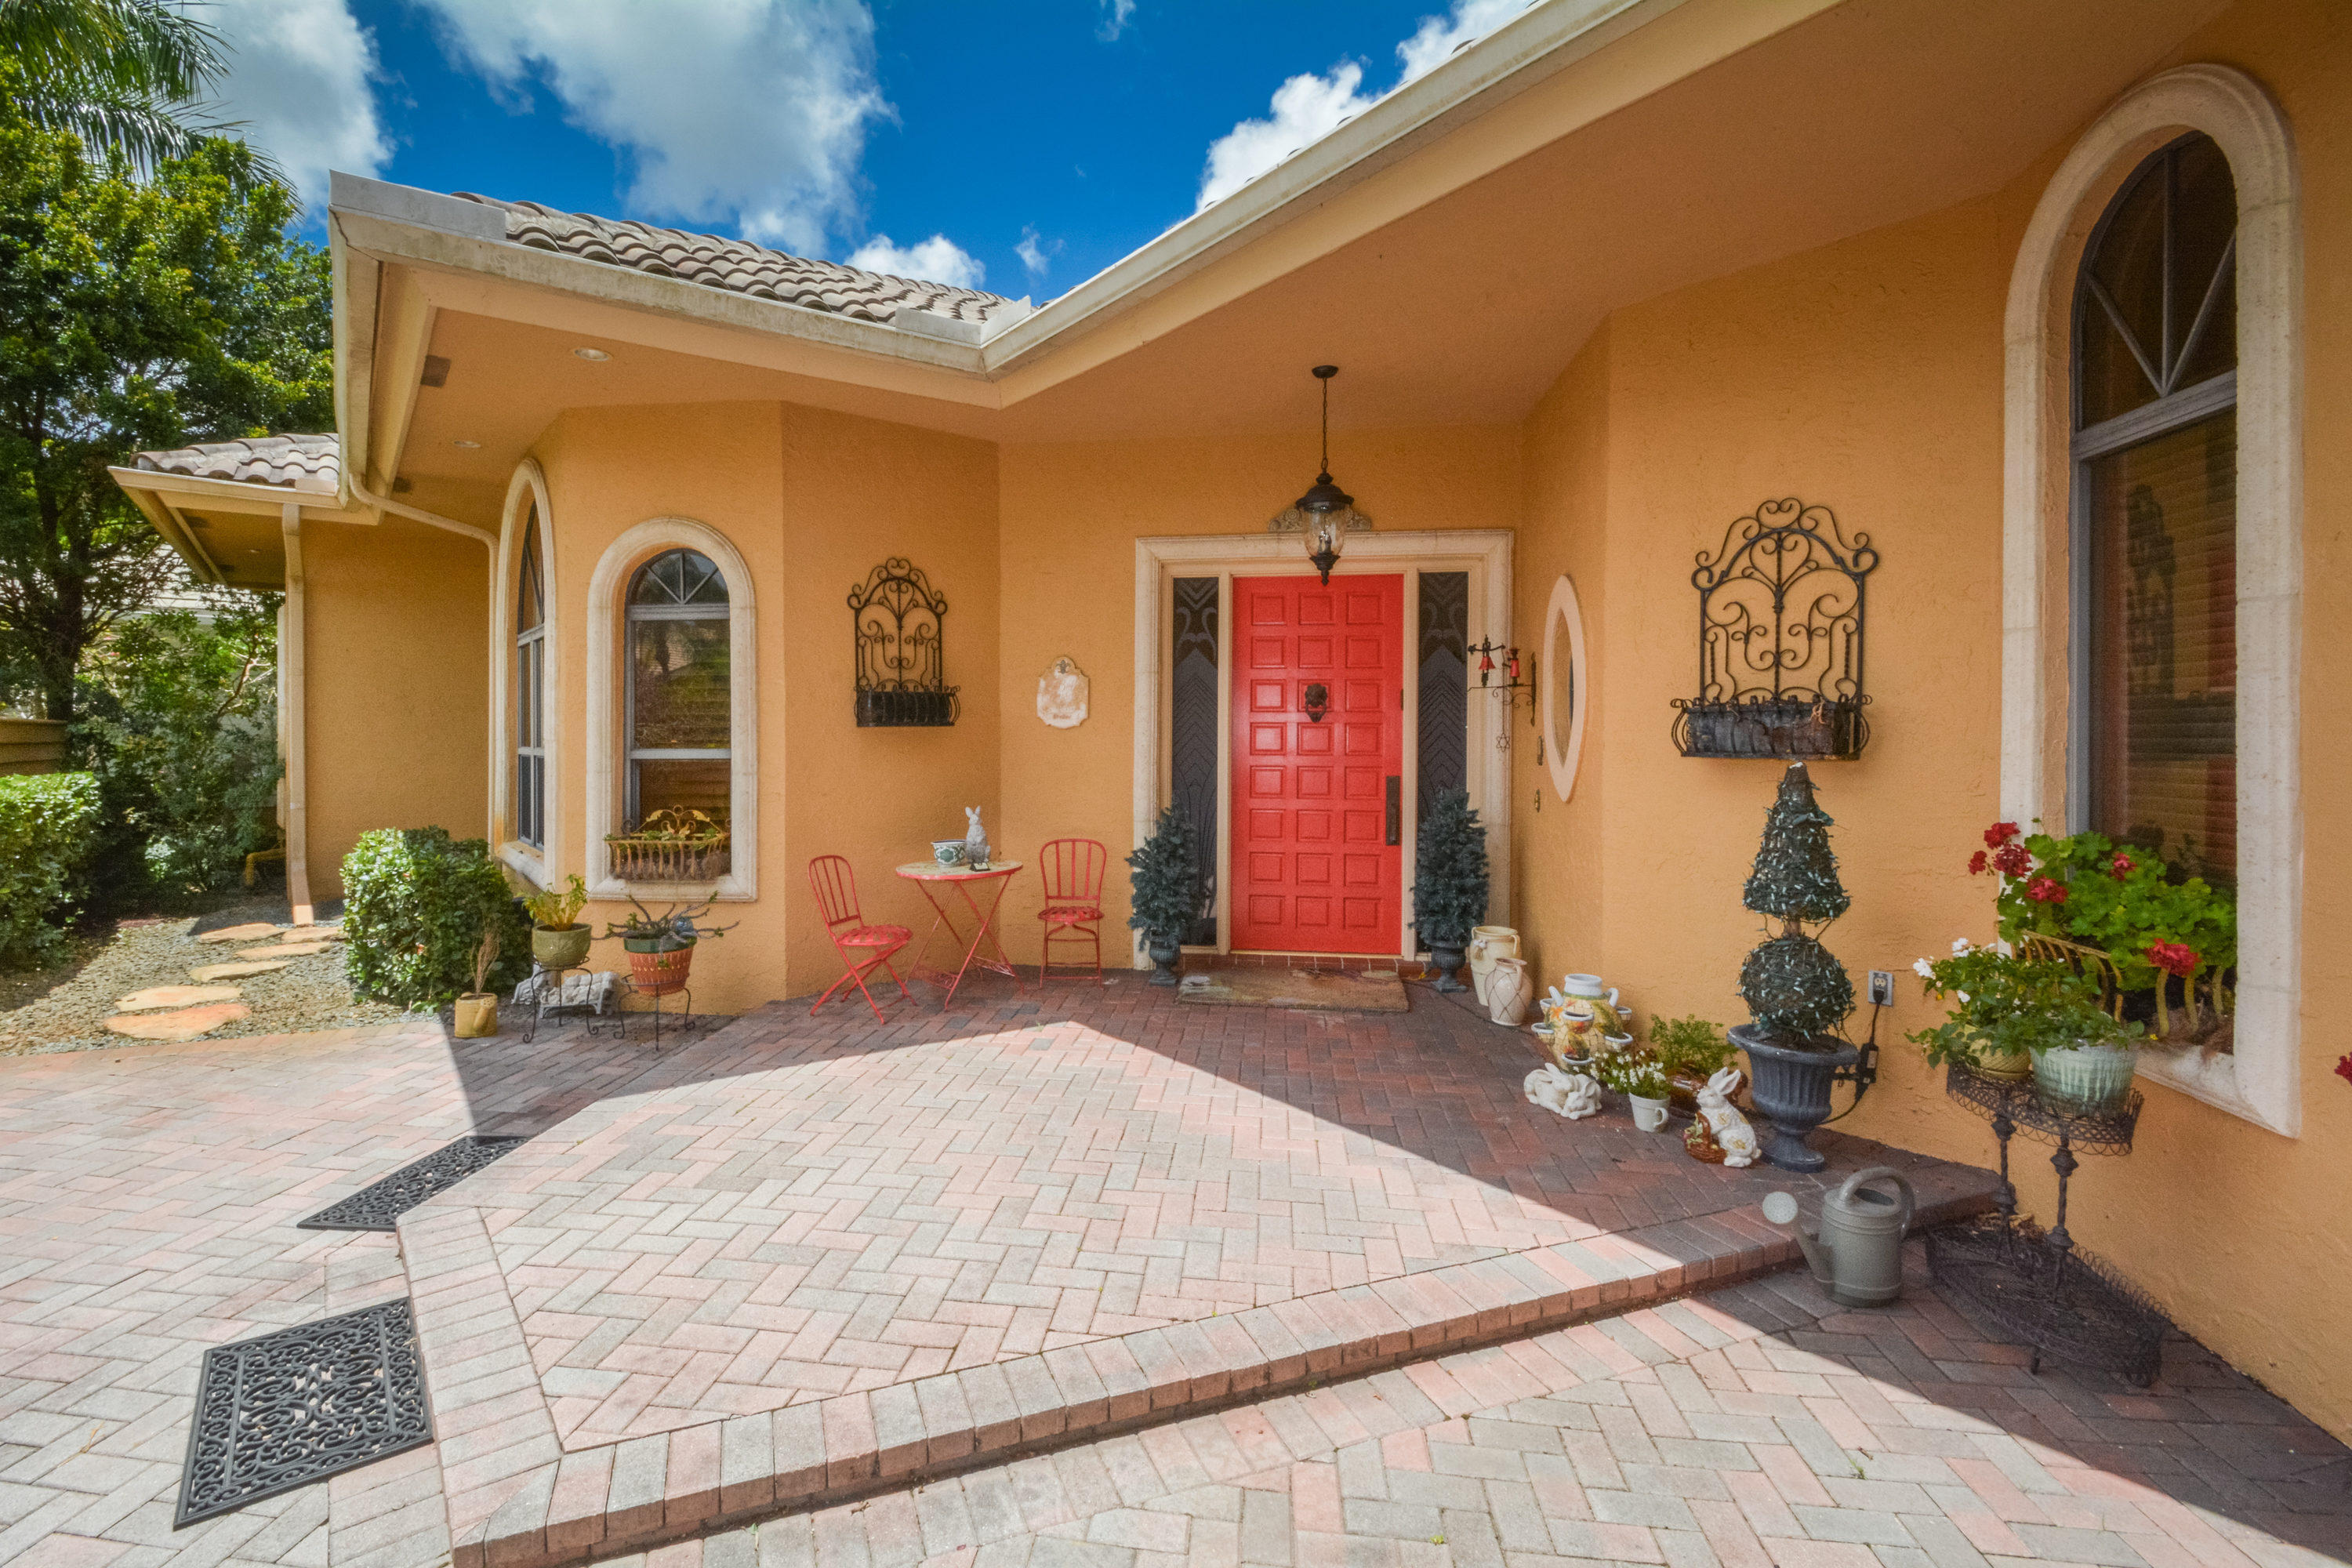 7892 Mandarin Drive, Boca Raton, Florida 33433, 5 Bedrooms Bedrooms, ,5.1 BathroomsBathrooms,Single Family,For Sale,Boca Grove,Mandarin,1,RX-10443290